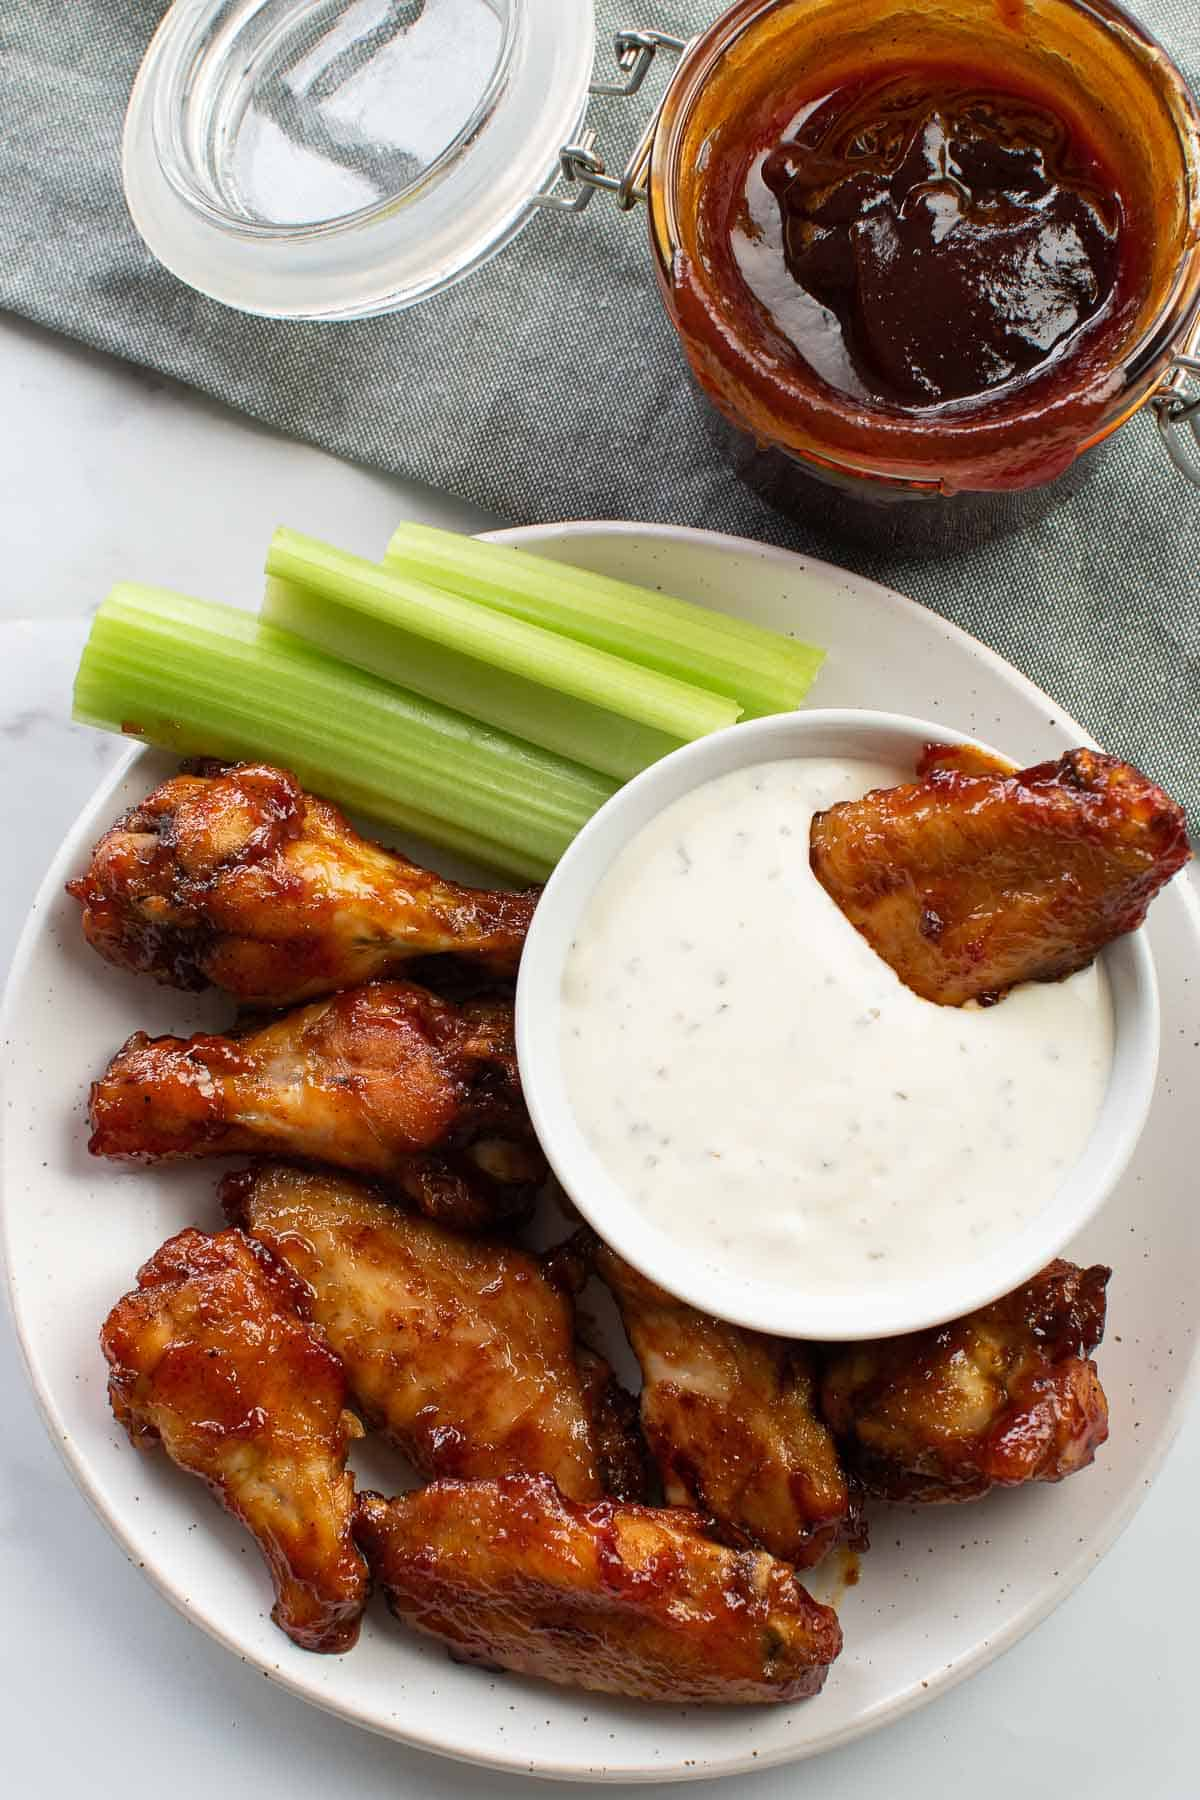 Baked BBQ chicken wings on a plate with a bowl of ranch and celery sticks.